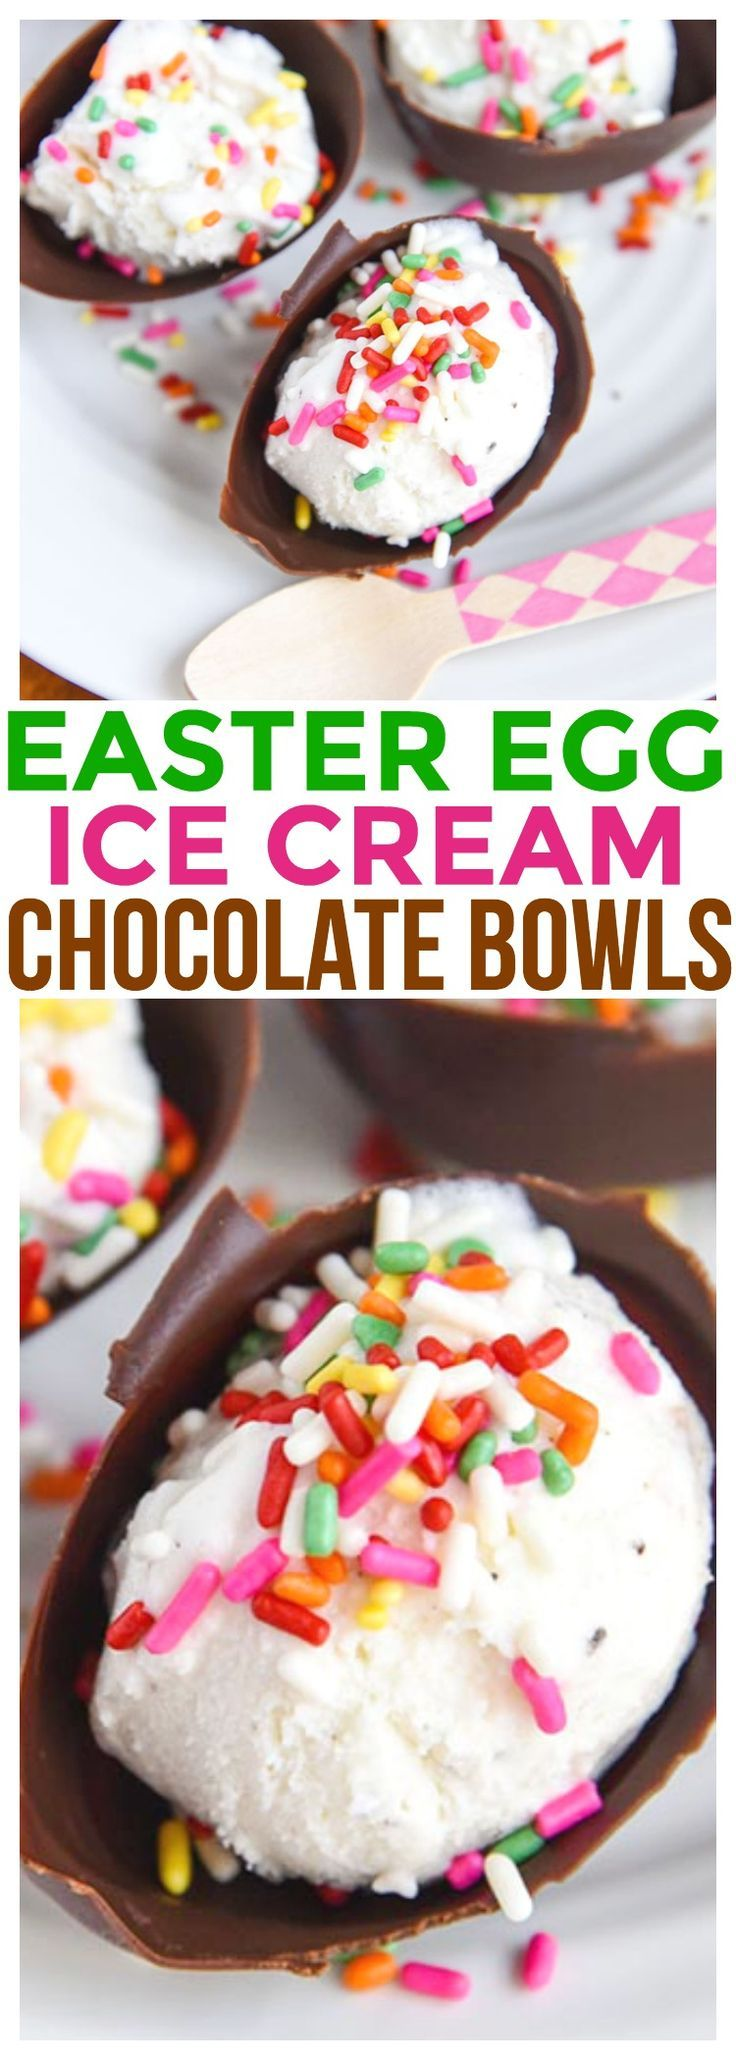 eastKid Friendly Recipe DIY Easter Egg Ice Cream Chocolate Bowls are so much fun for kids to not only make but to eat too! Edible Chocolate Bowls DIY Dessert Recipe.    via @CourtneysSweets